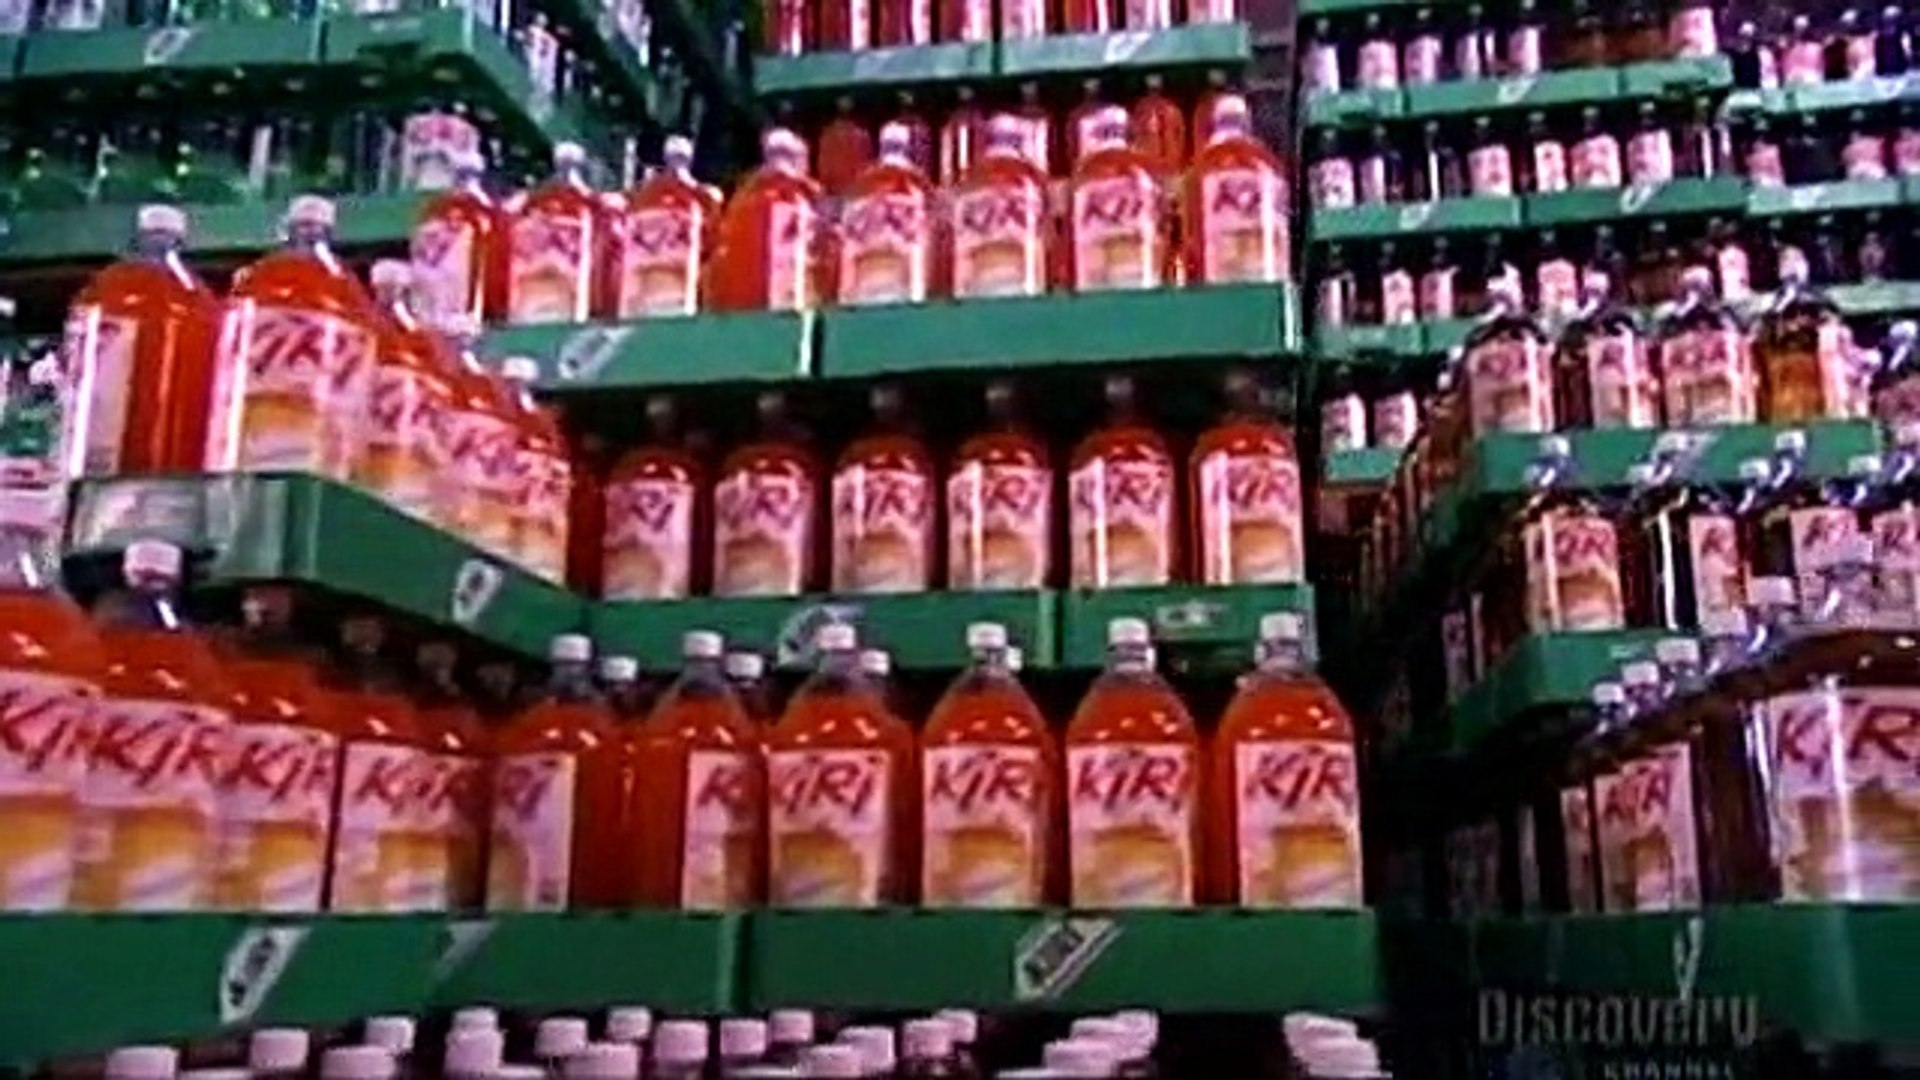 How Its Made - 250 Soft Drinks